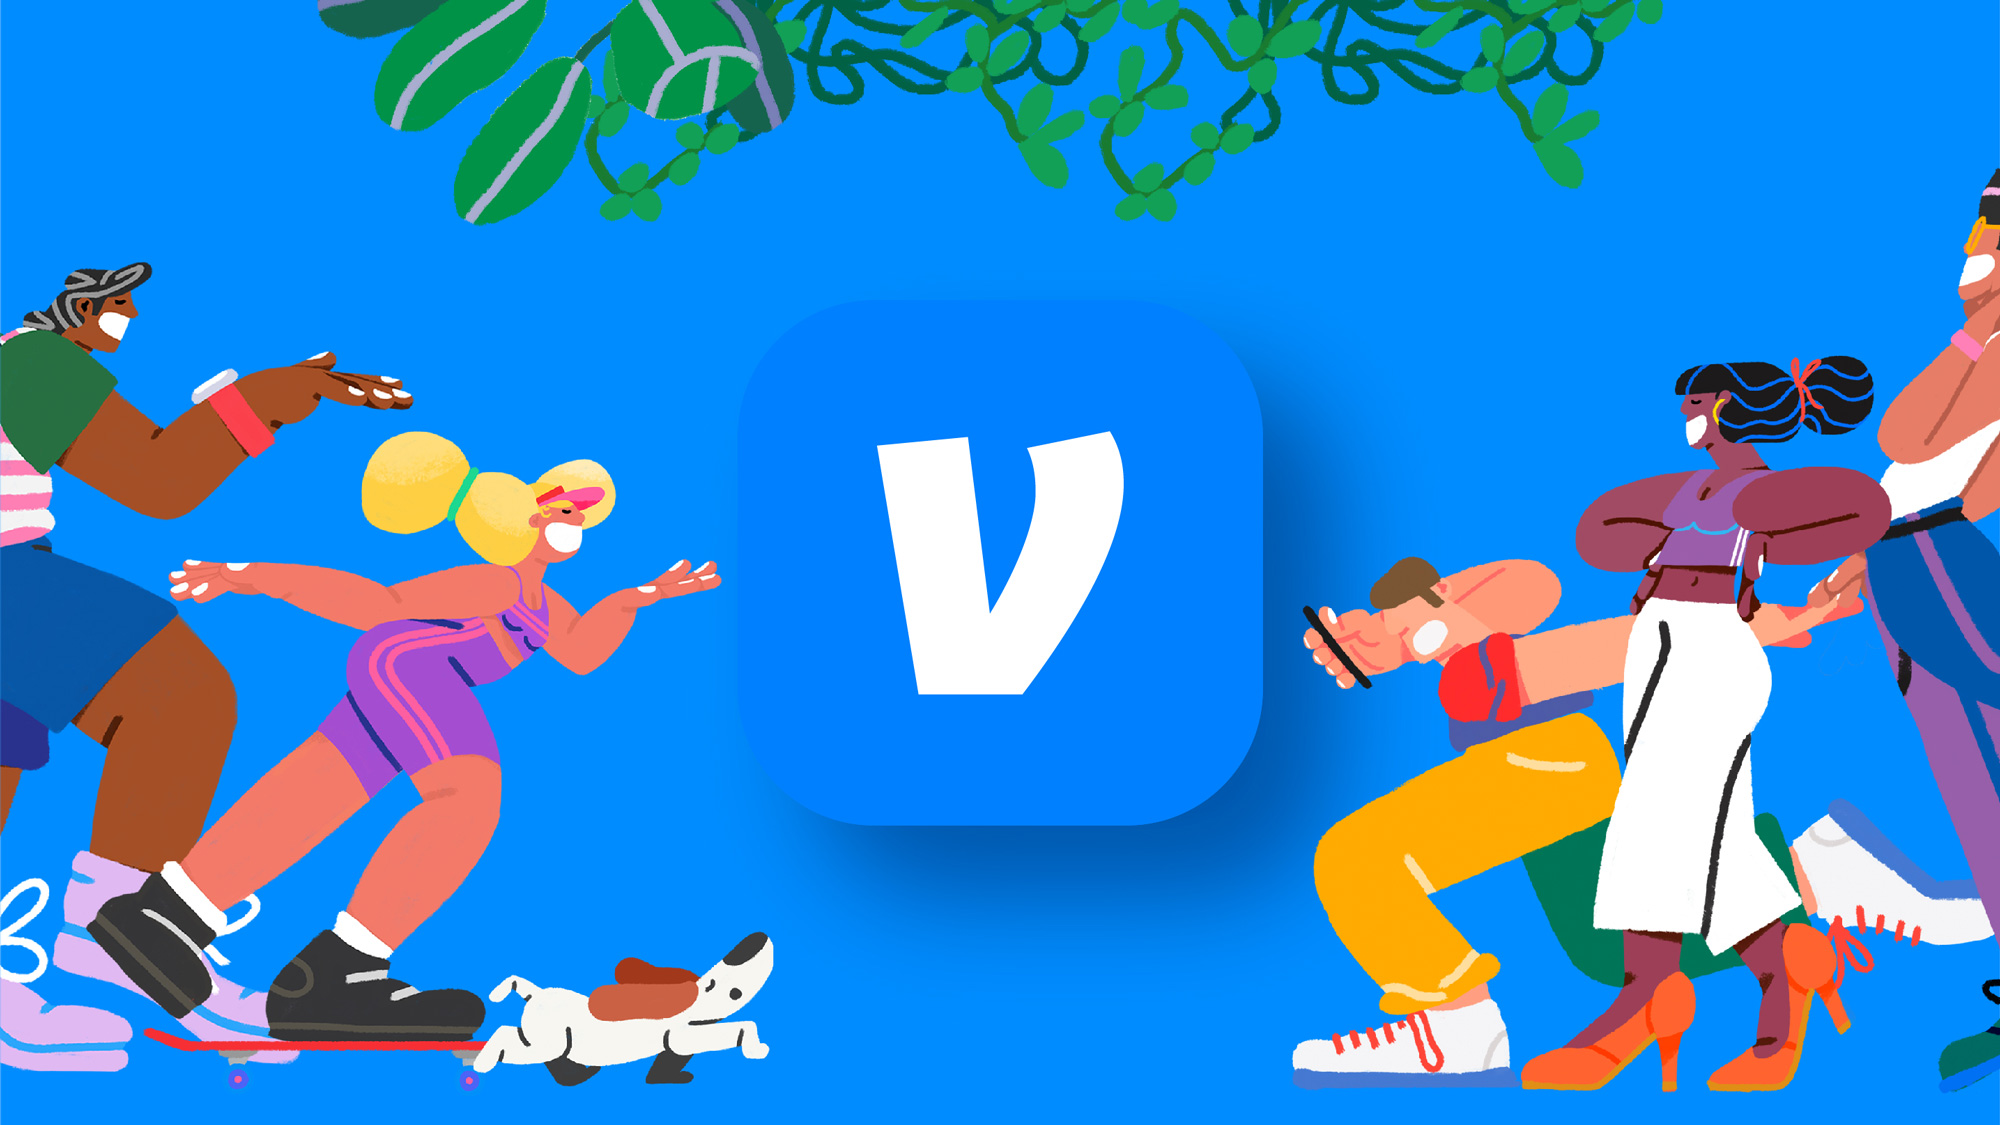 New Identity for Venmo by Koto